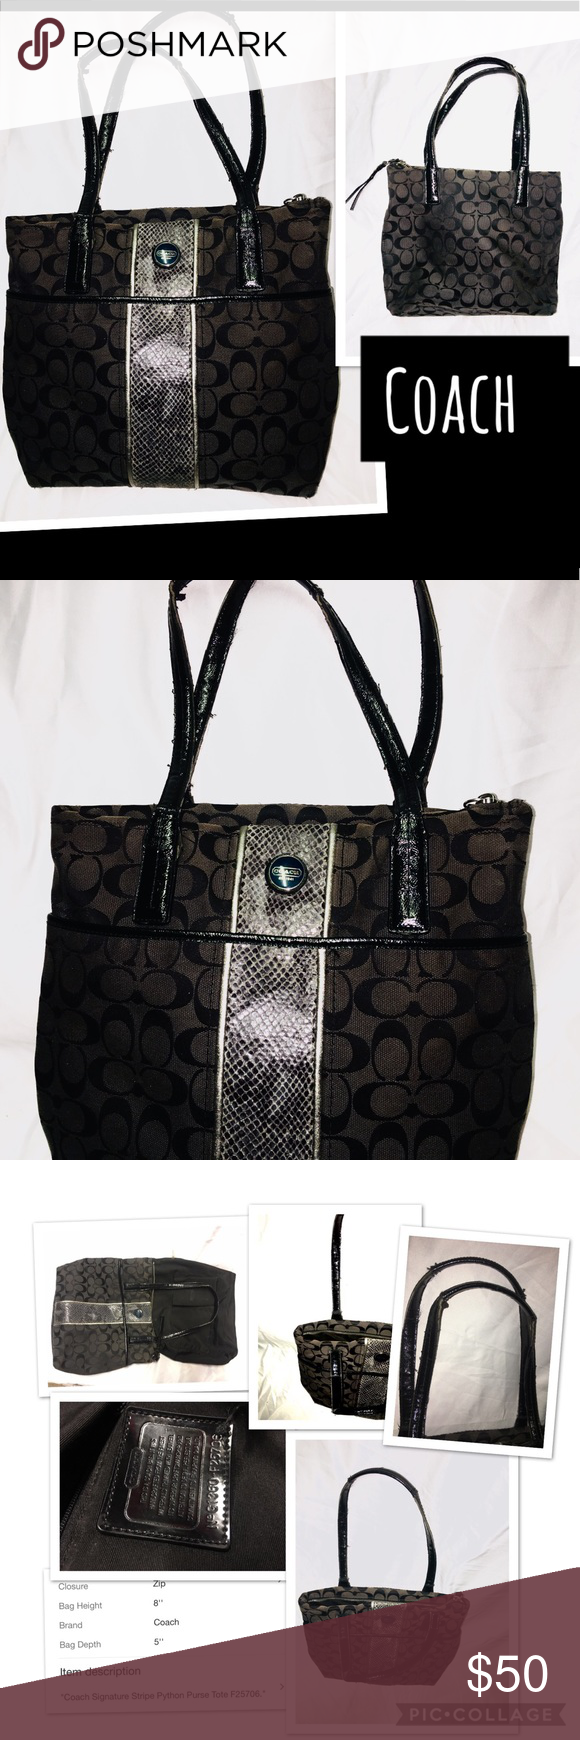 Coach tote signature c purse. This coach is a signature python striped  tote. Medium sized It has a zipper closure on top with 2 inside slide  pockets and ...